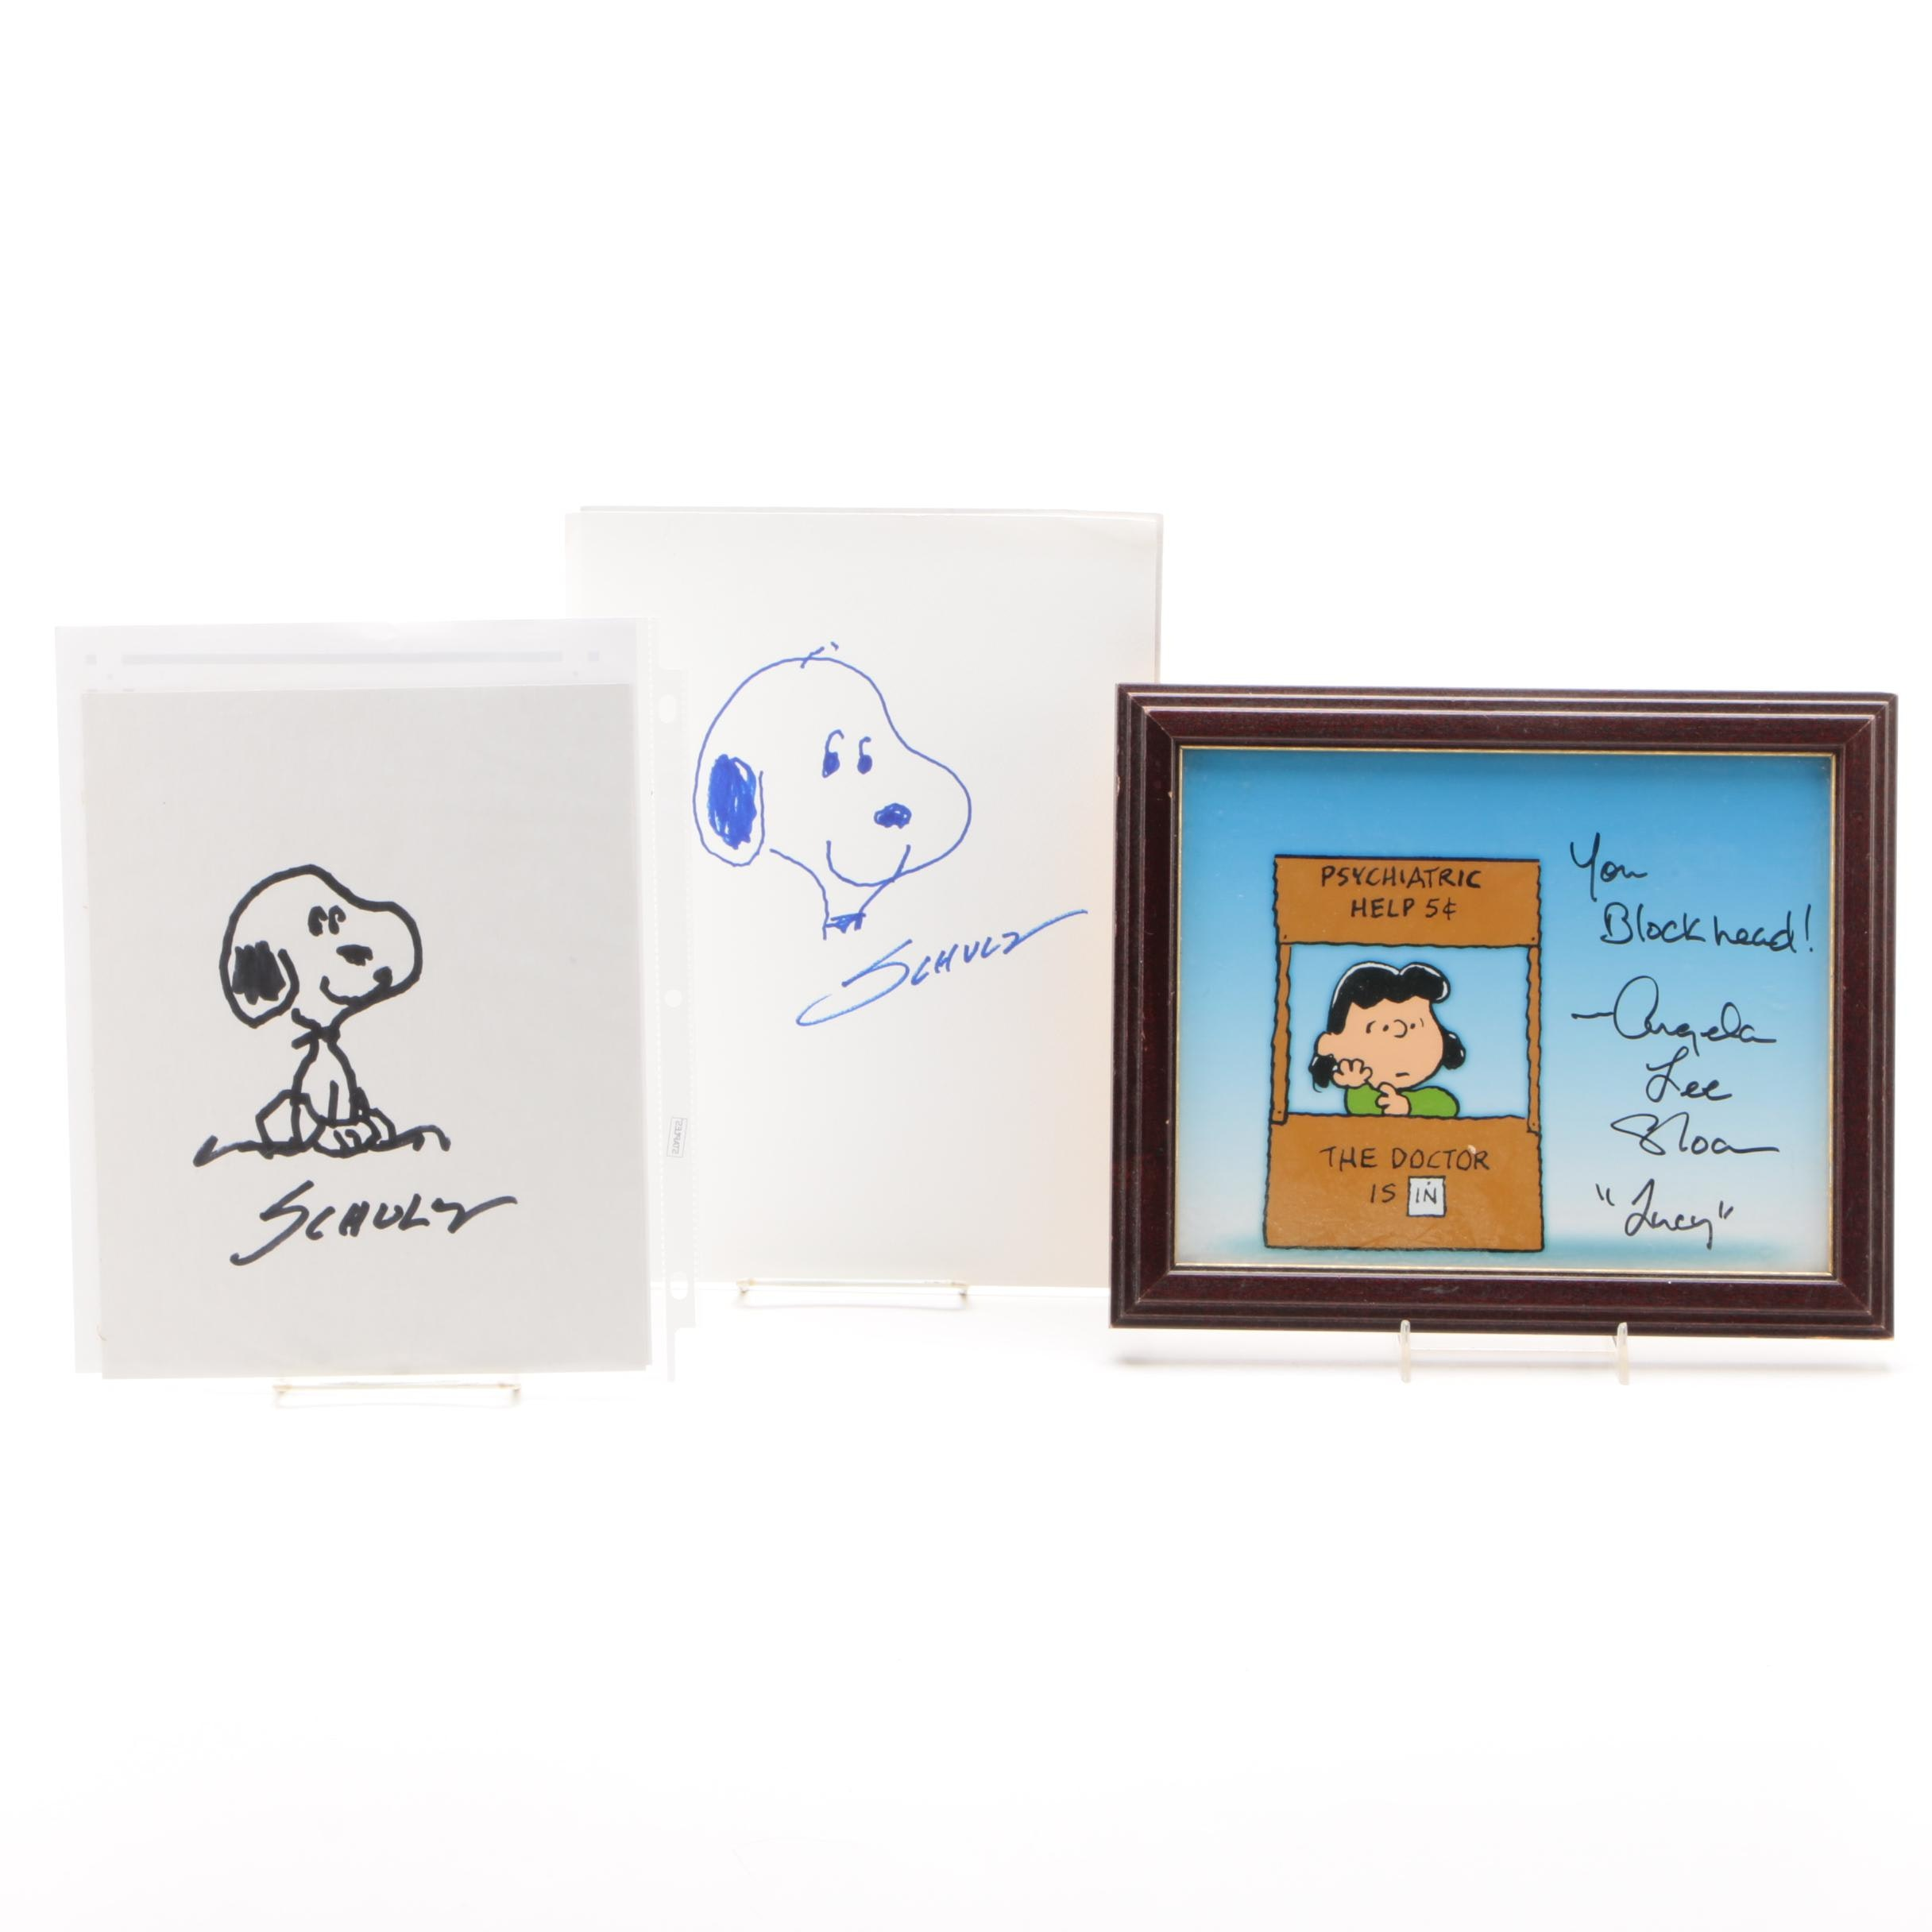 Charles Schulz Autographed Snoopy Sketches with Angela Lee Sloan Autograph